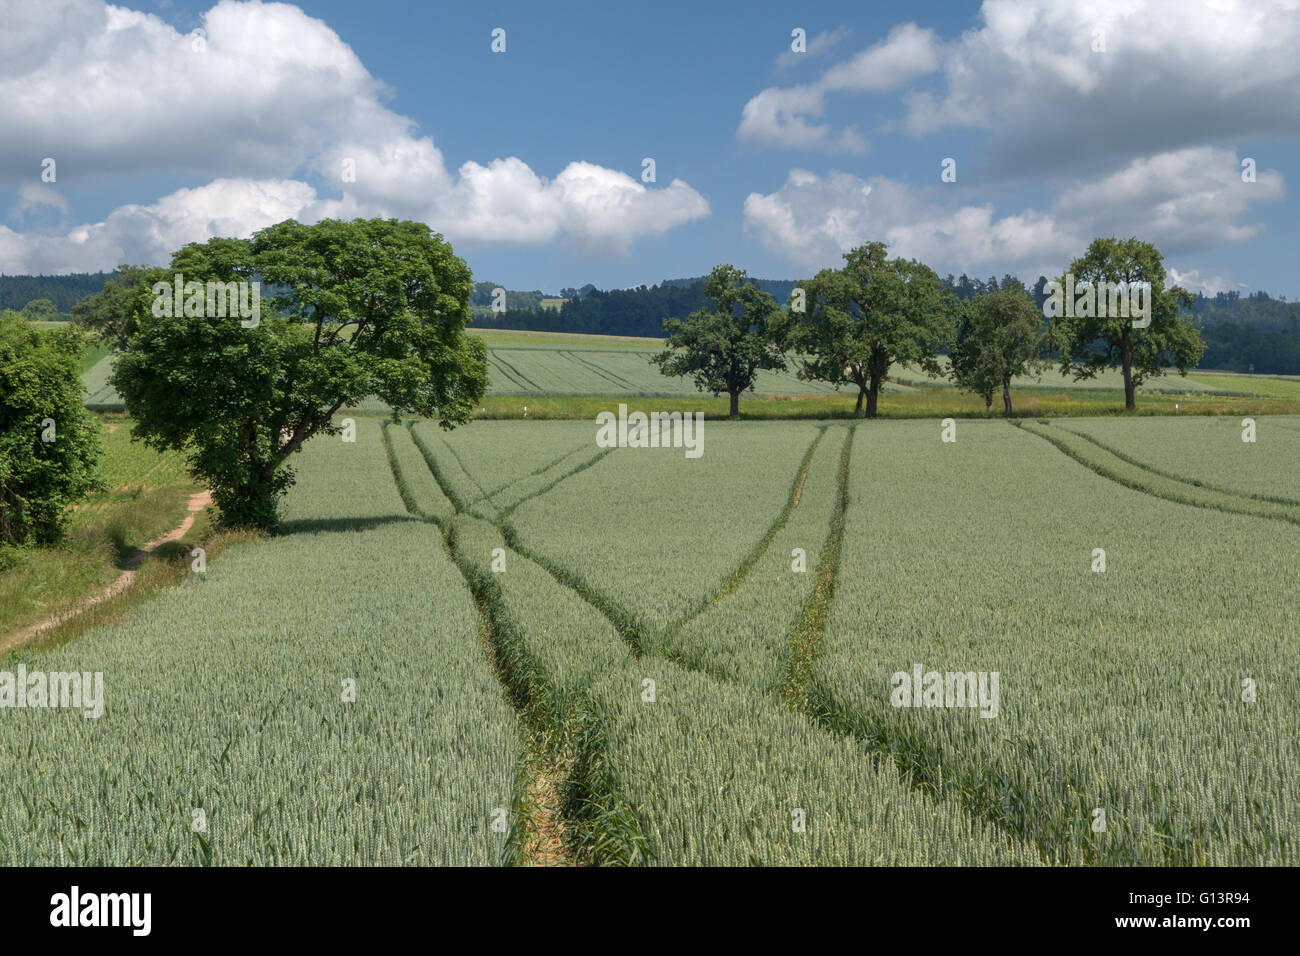 Lanes in the green wheat field - Stock Image